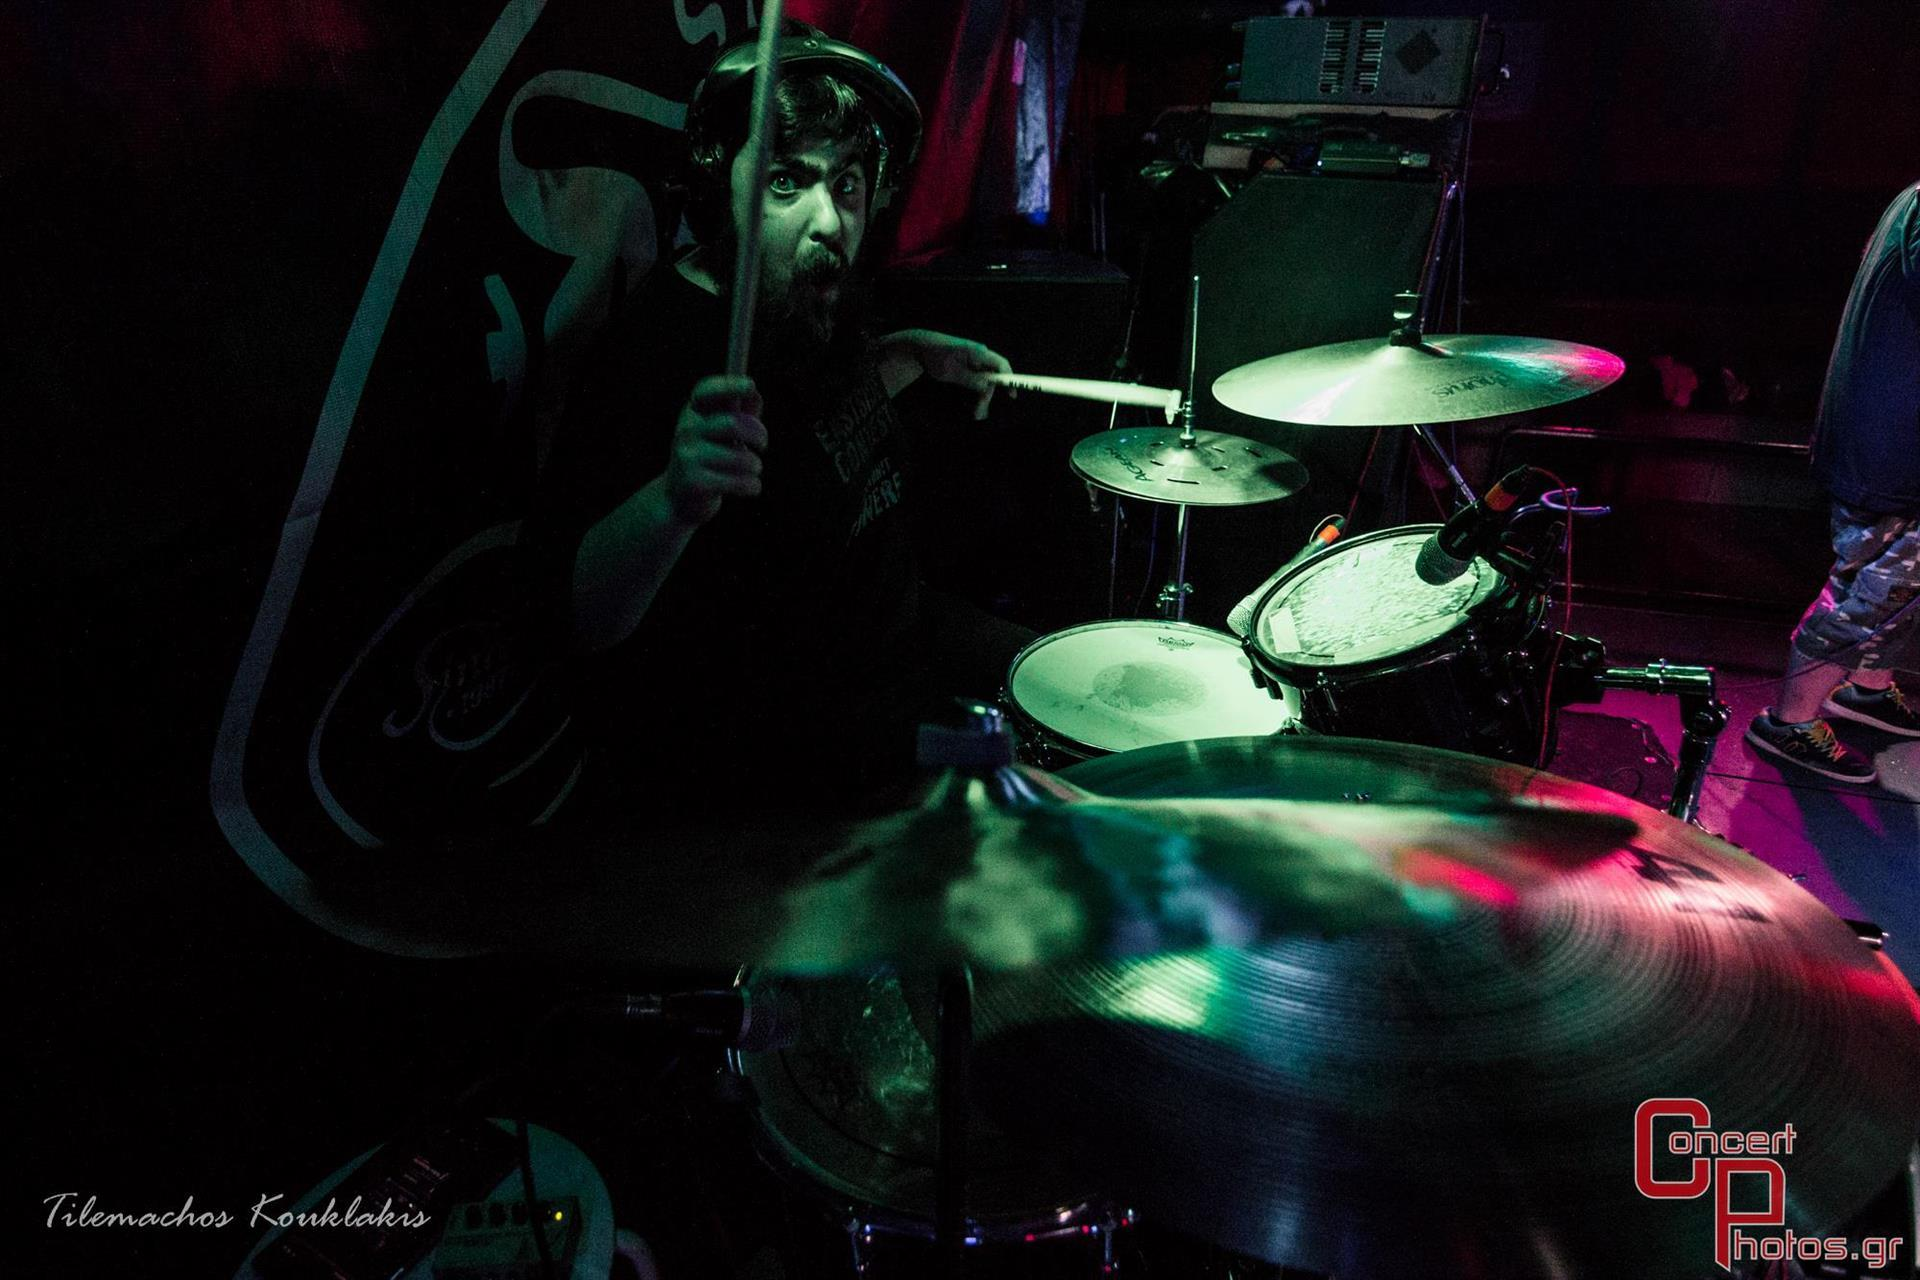 Battle Of The Bands Athens - Leg 4-test photographer:  - Battle Of The Bands-20150209-001050